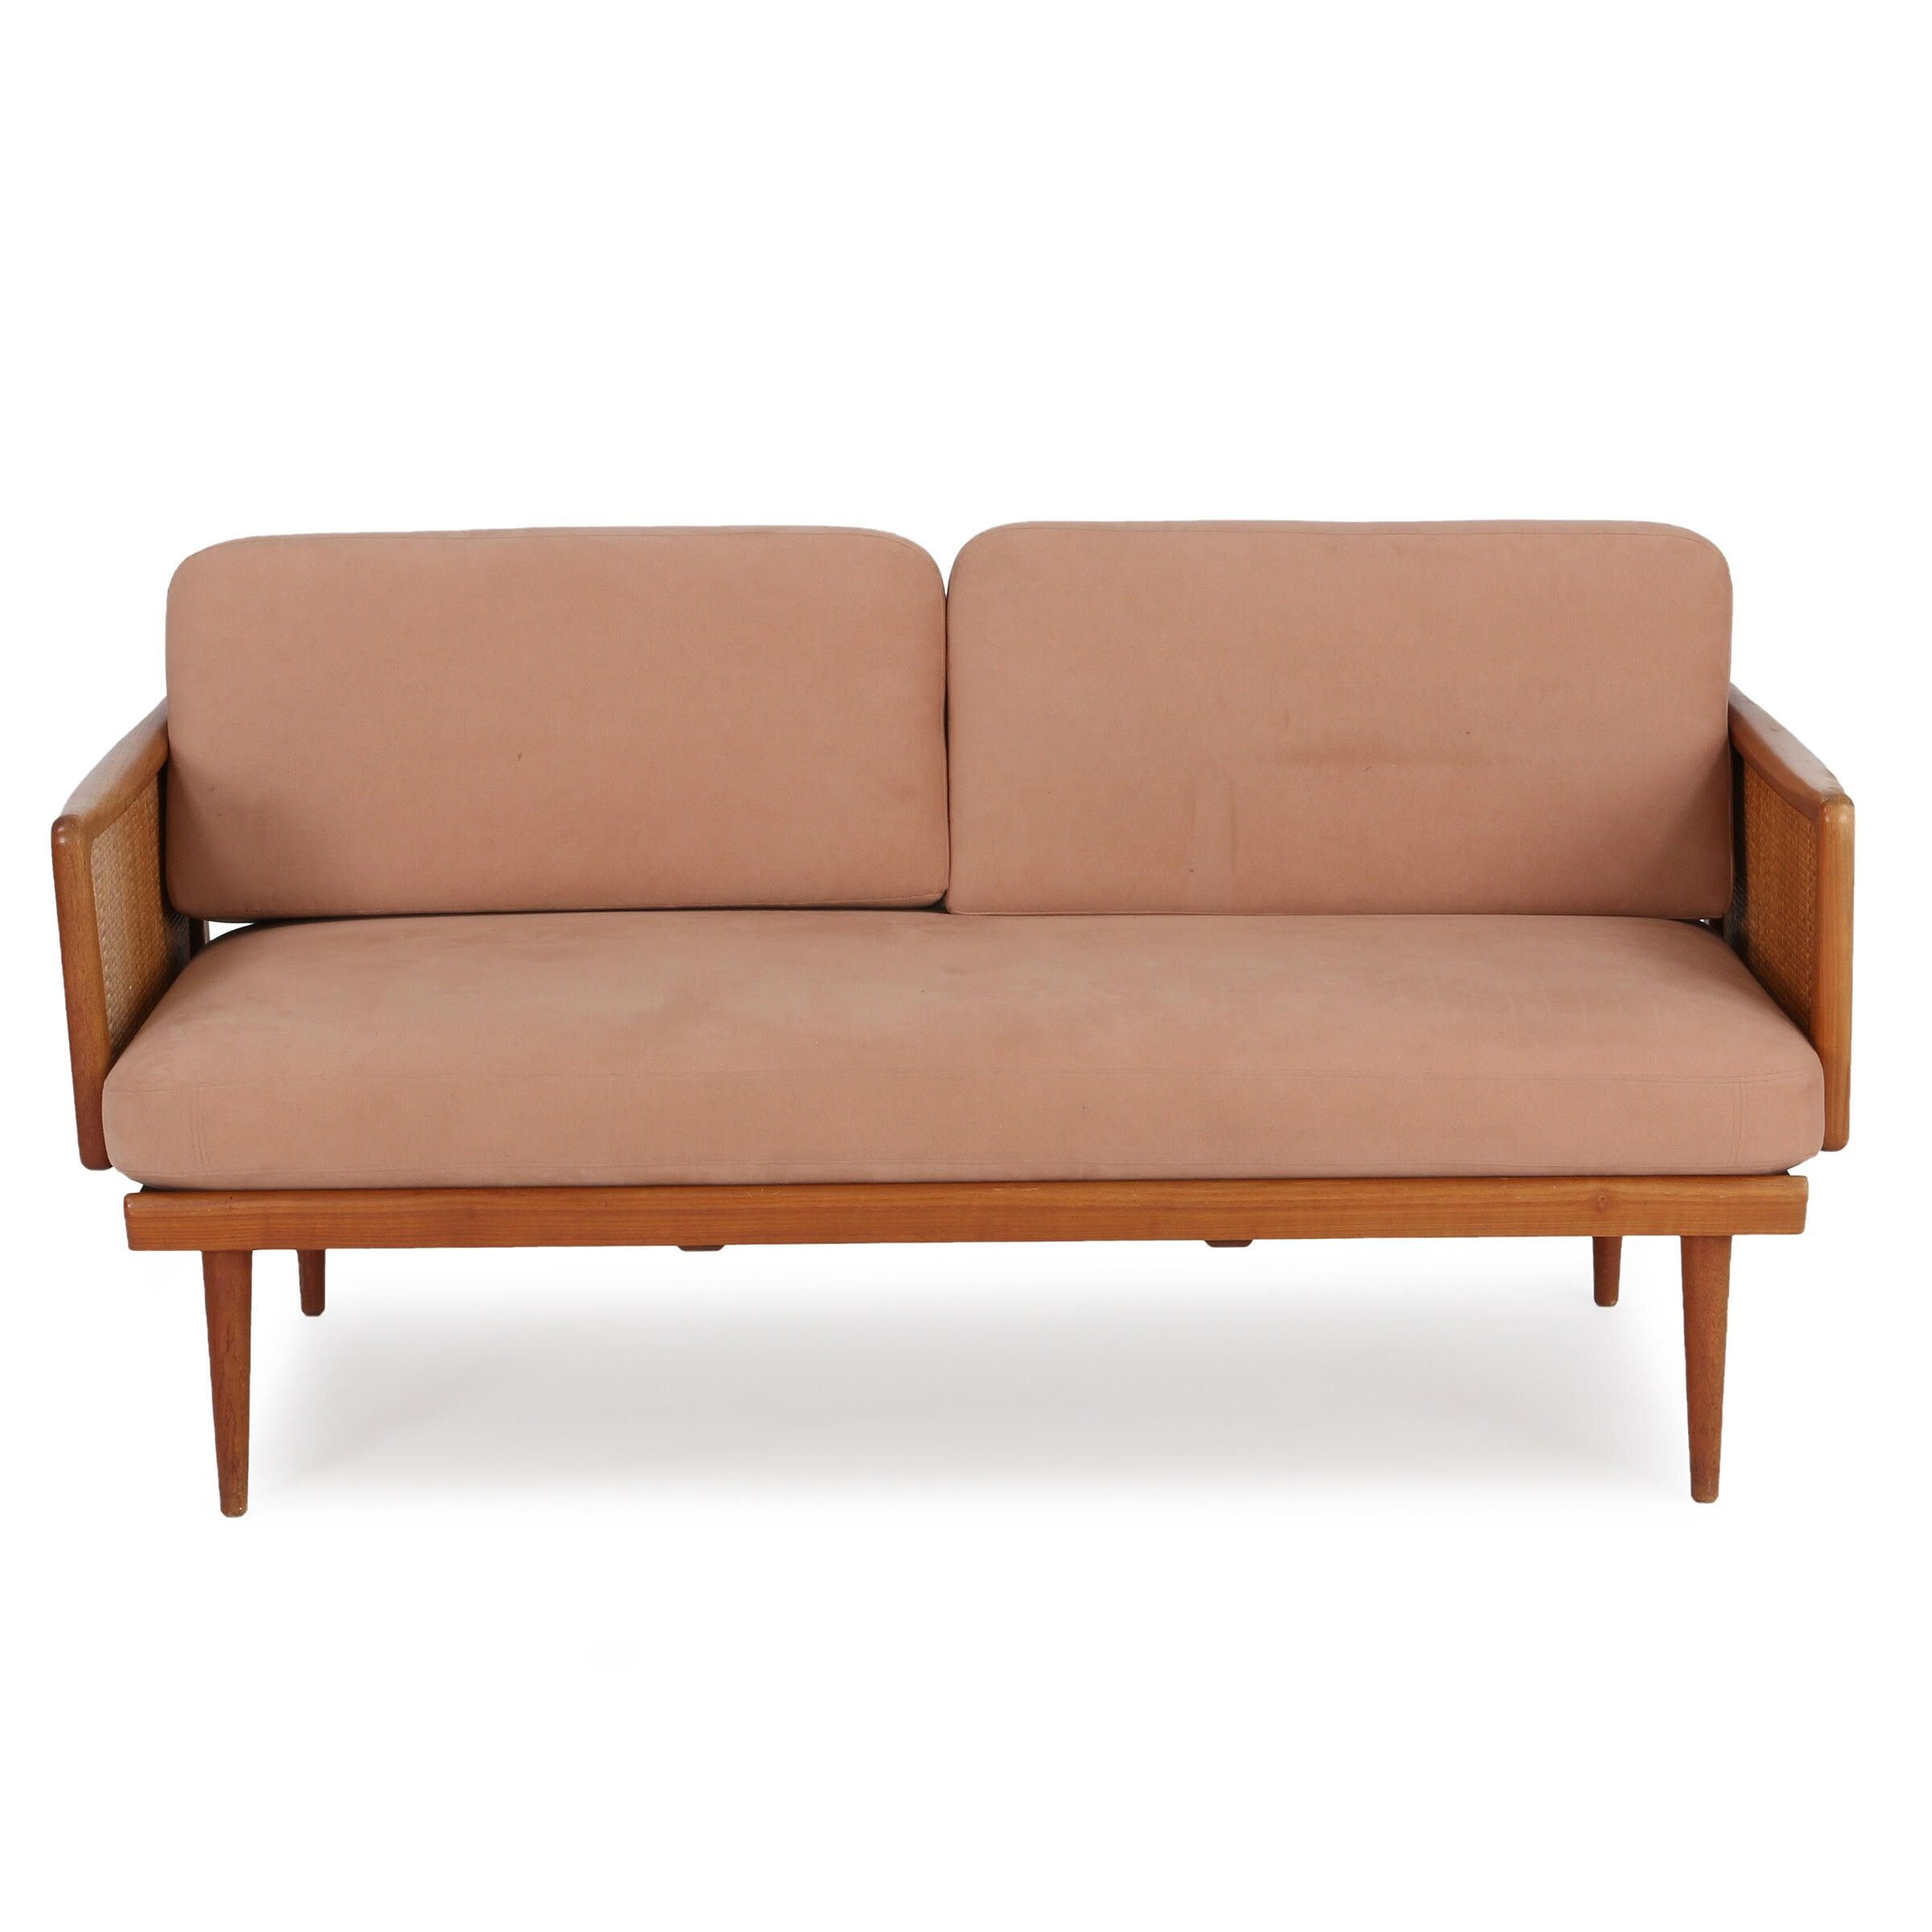 6104a6add3c3e Vintage sofa 2 seat daybed FD 451 by Peter Hvidt and Orla Molgaard-Nielsen